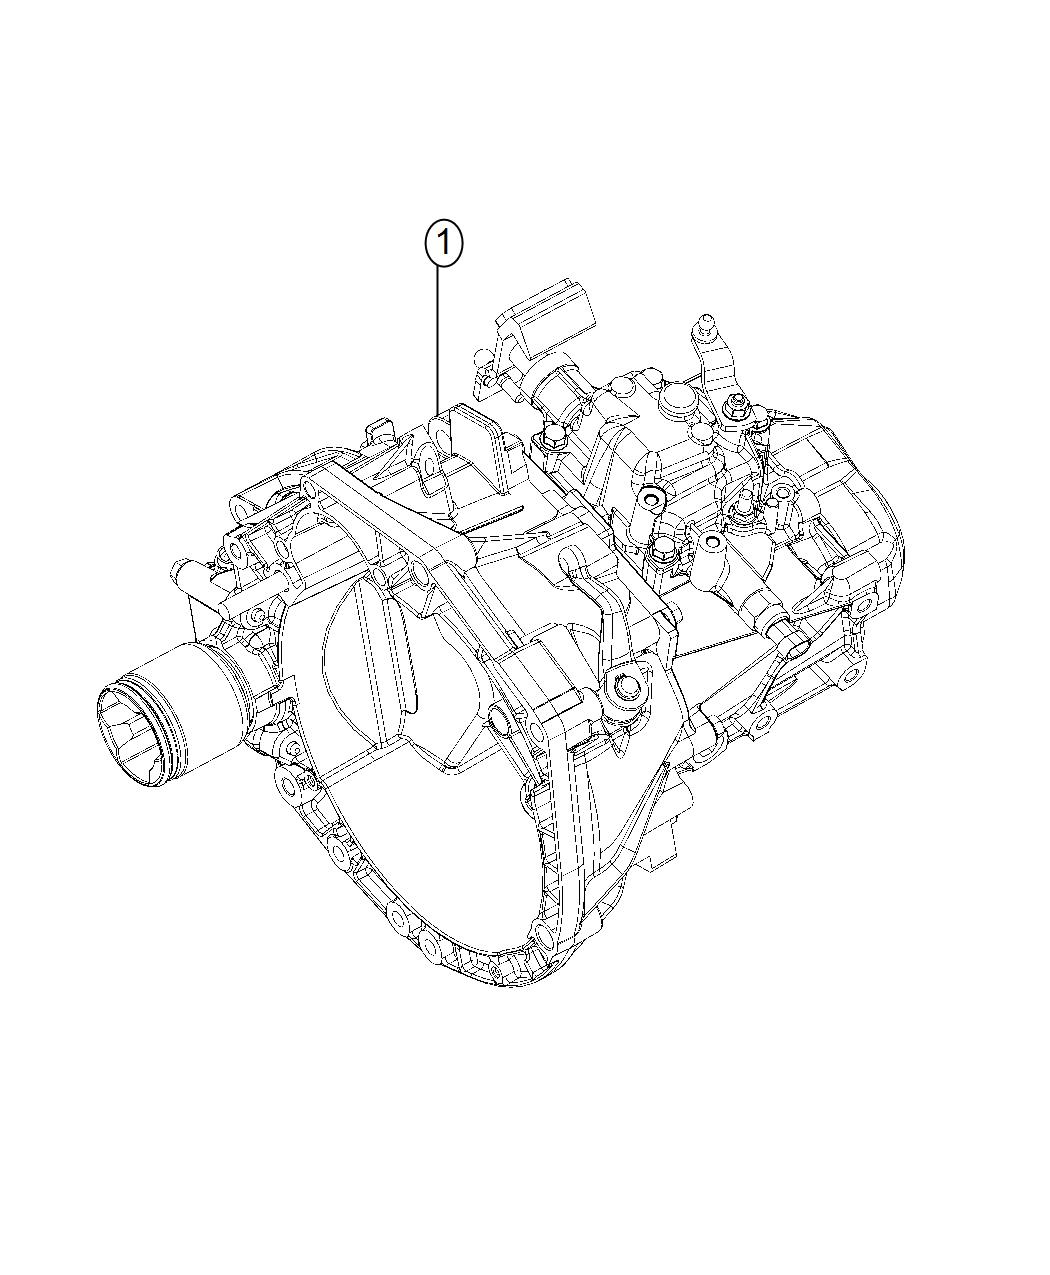 Fiat 500 Transmission. 5 speed. [3.73 rear axle ratio